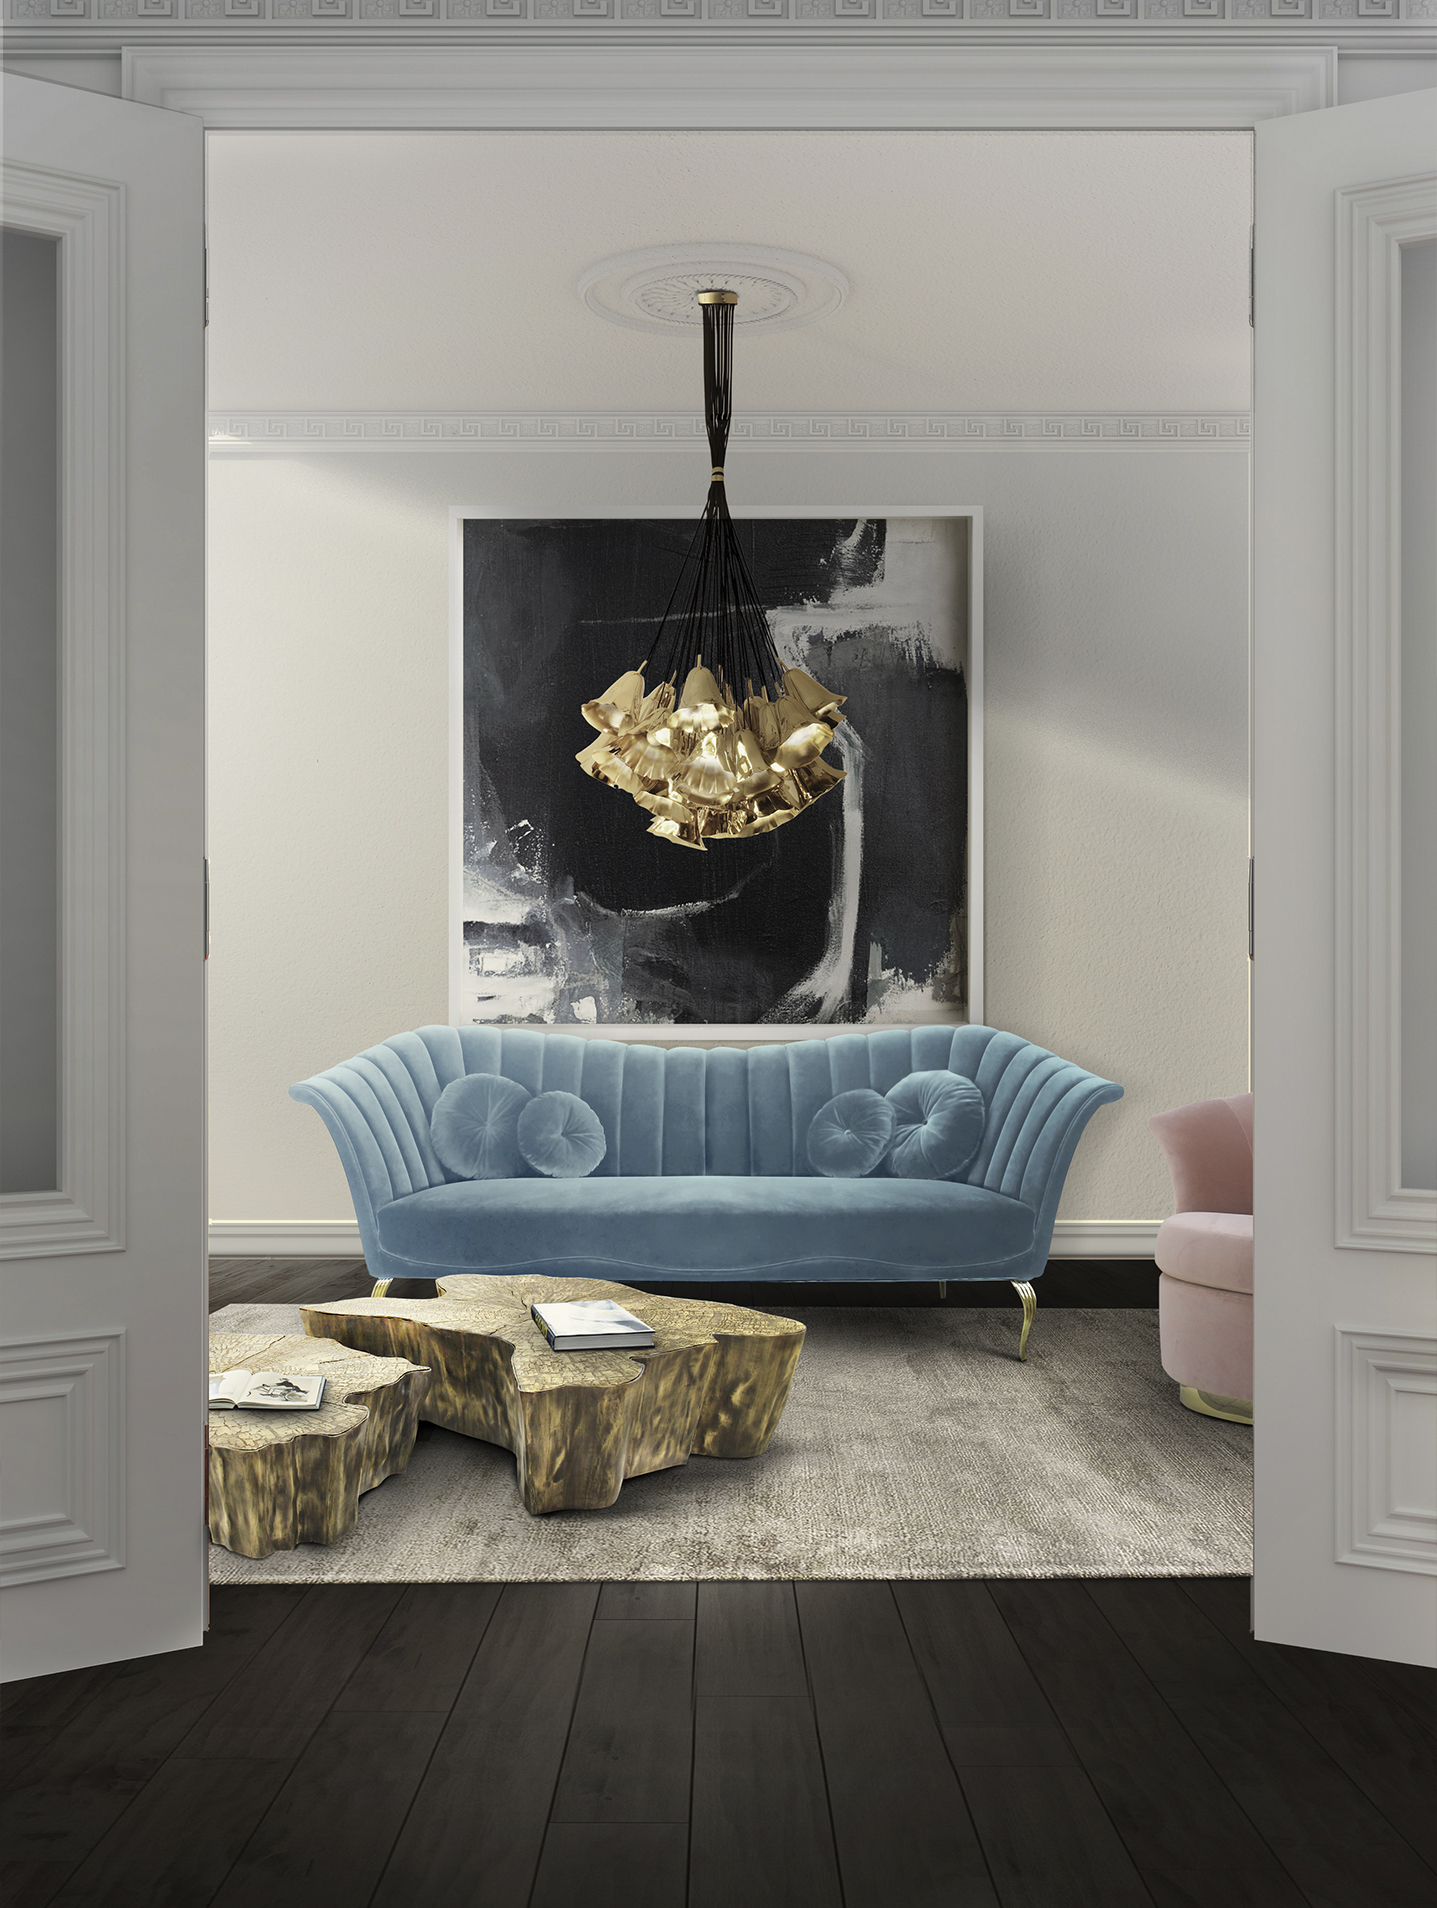 Caprichosa sofa and Gia chandelier KOKET Spring 2017 Living Room Décor Trends to use on Spring 2017 10 Living Room D  cor Trends to use on Spring 20176